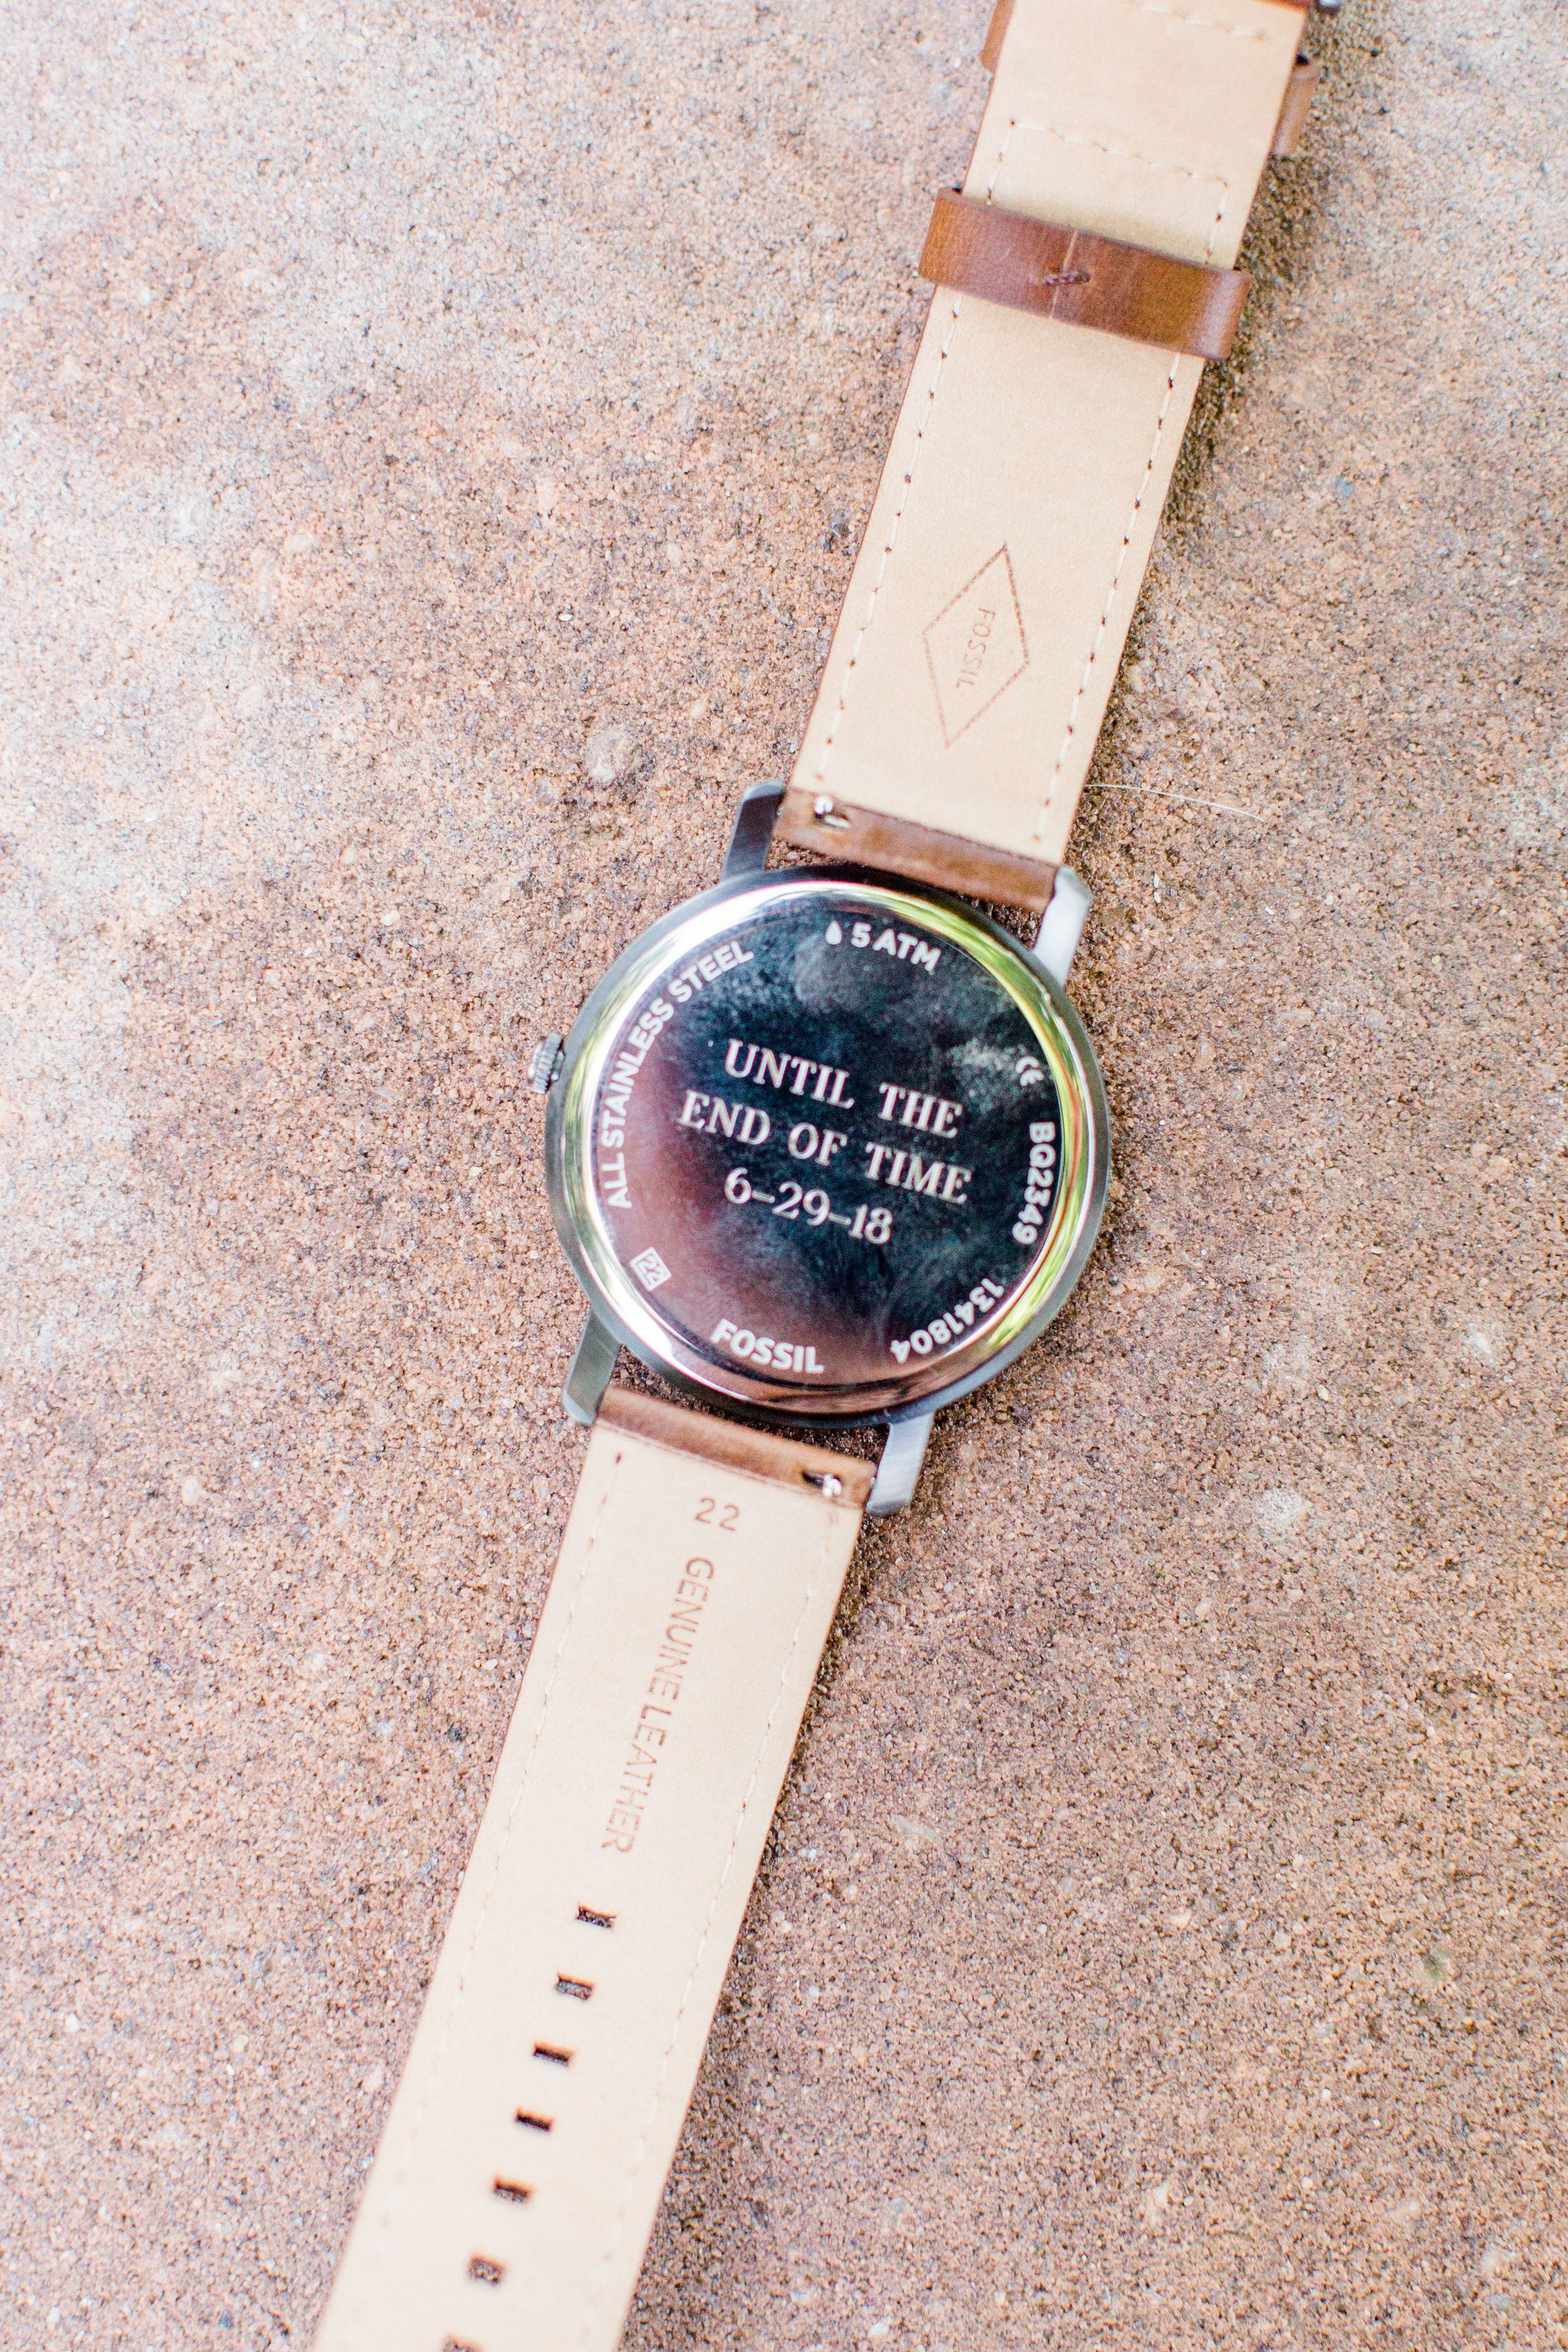 Gift From Bride To Groom Fossil Watch With Engraving Of Wedding Date Wedding Gifts For Groom Wedding Gifts For Bride And Groom Mother Of Bride Gifts